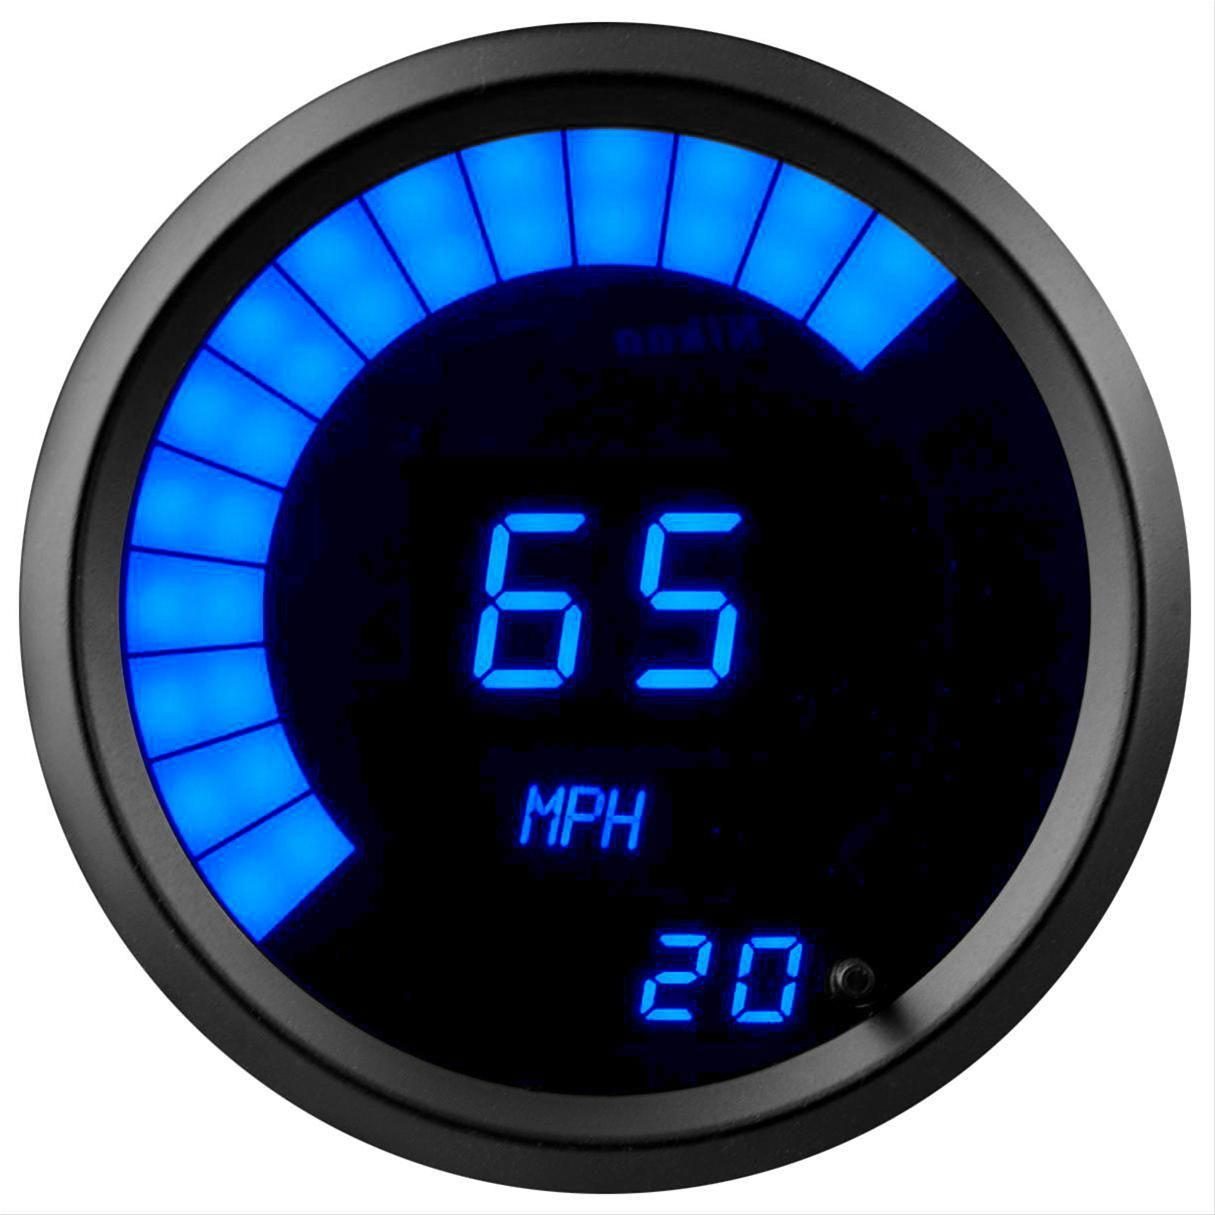 Find Summit Racing Led Digital Speedometers Sum G2981 2b And Get Free Standard Shipping On Orders Over 99 At Summit Racing Summit Racing Bar Graphs Digital